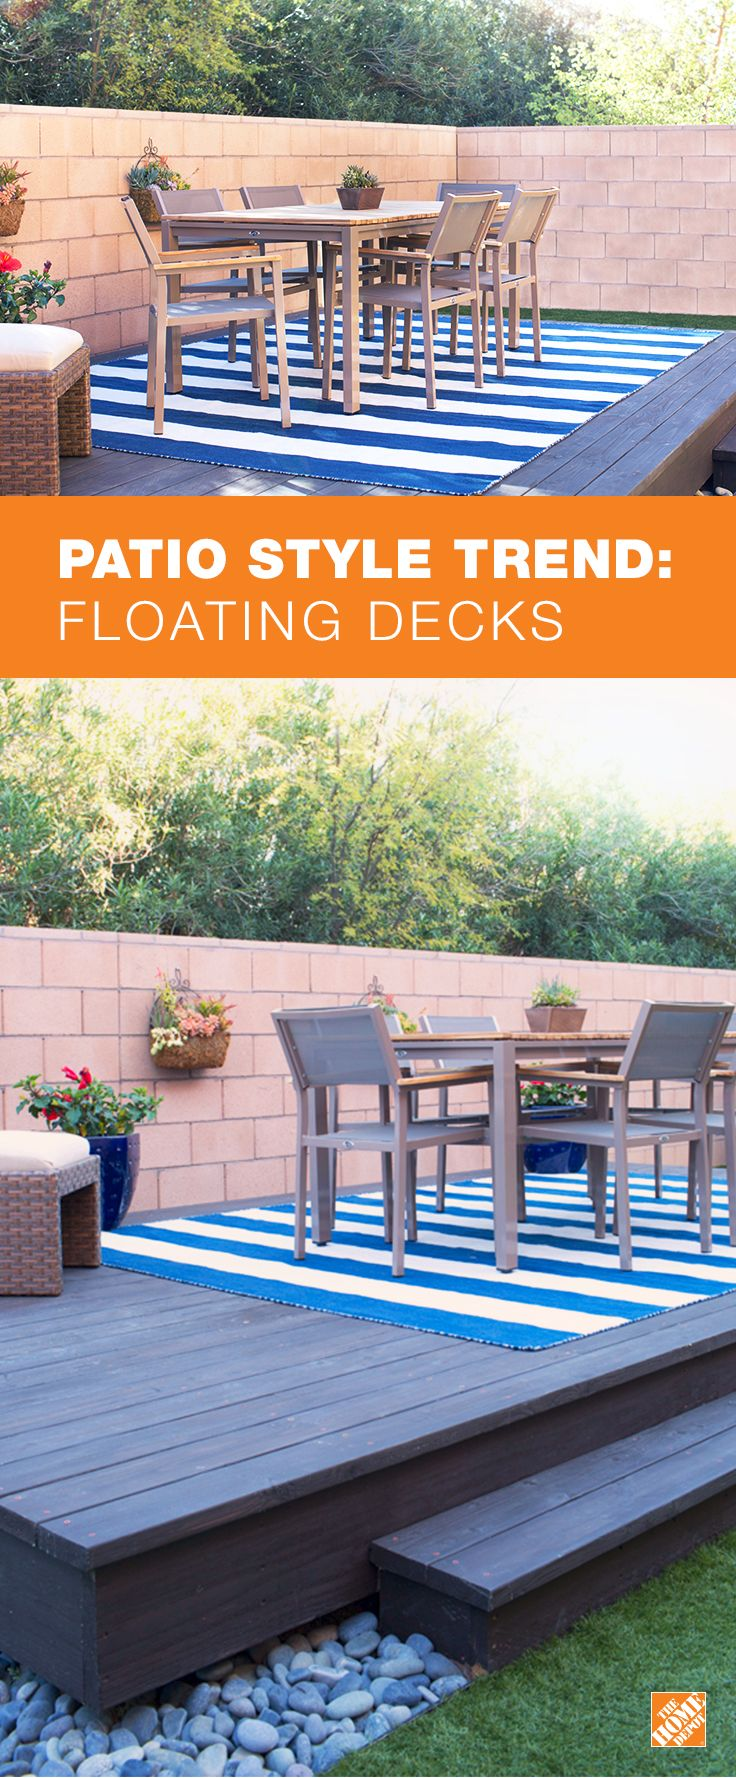 How To Build A Floating Deck The Home Depot Building A Floating Deck Backyard Patio